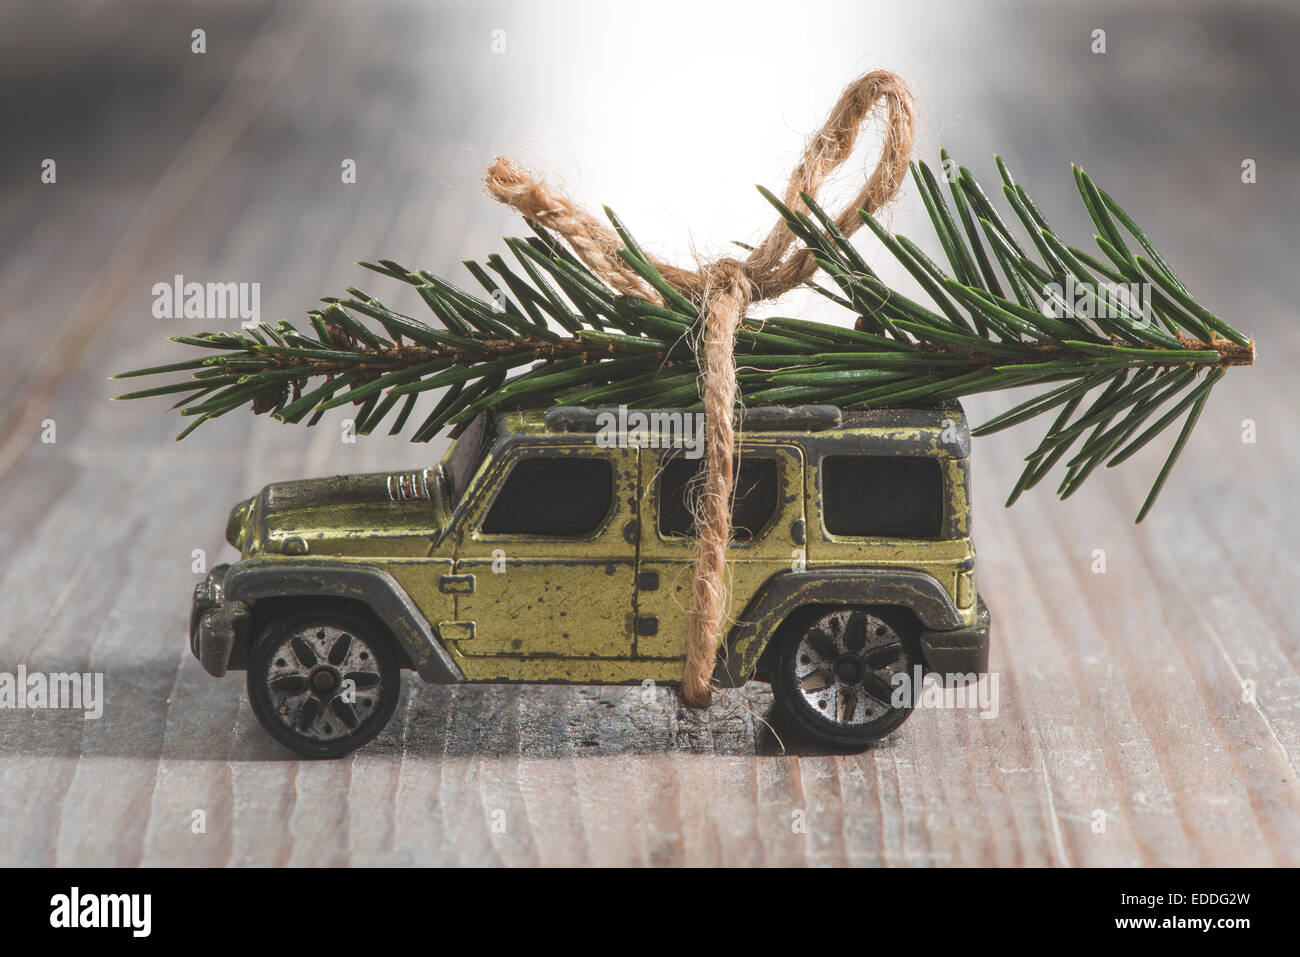 SUV Car Toy With Christmas Tree On Roof Stock Photo Royalty Free  - Christmas Tree On Car